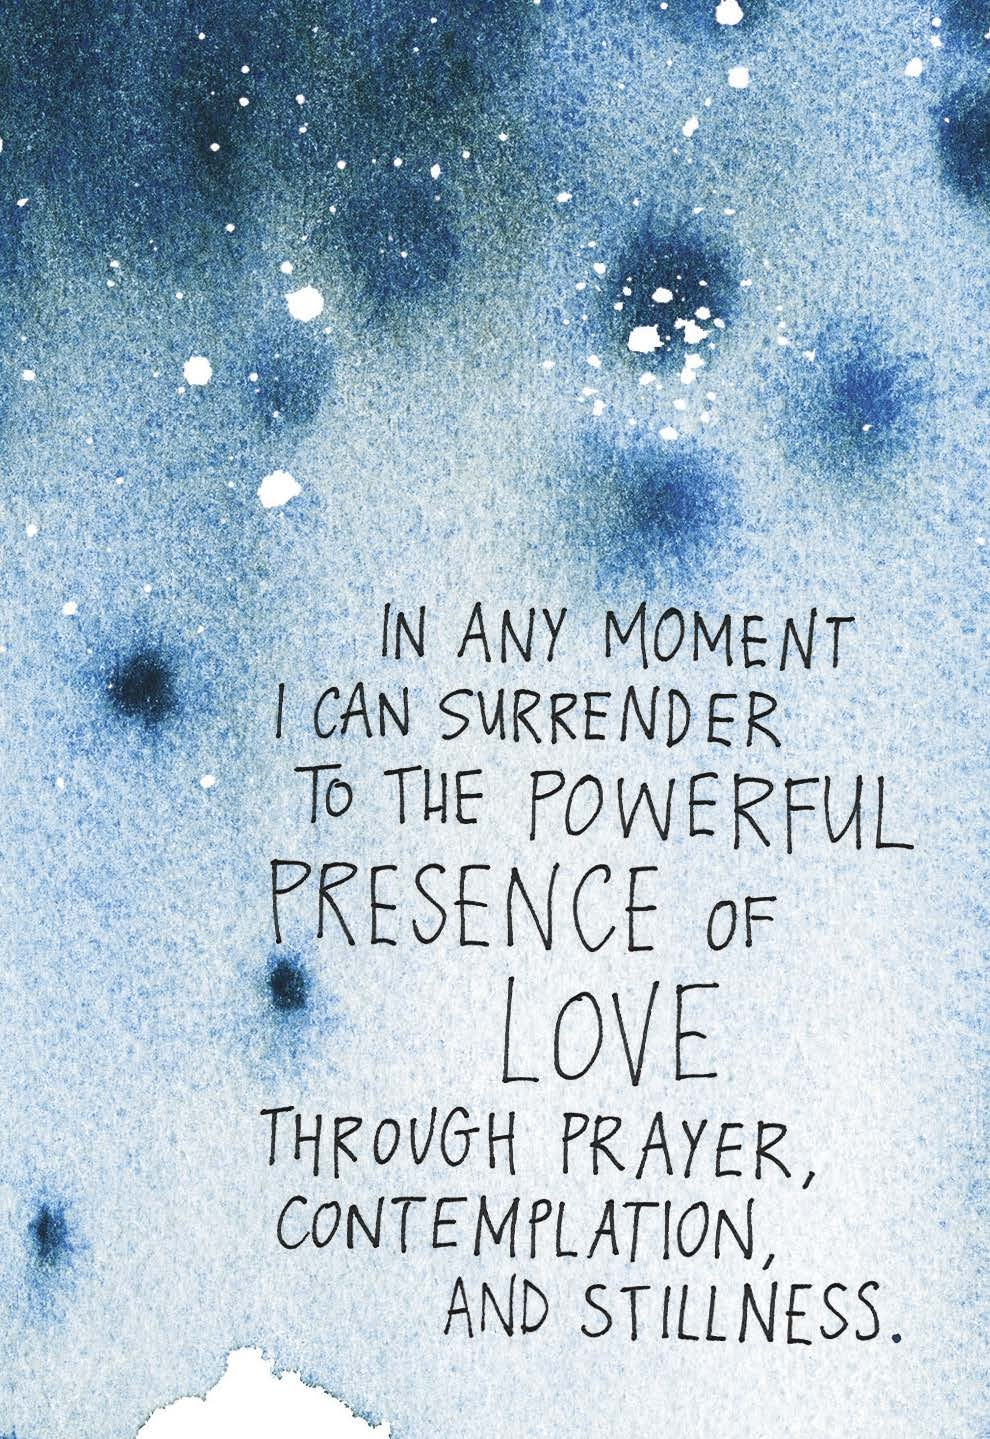 In any moment I can surrender to the powerful presence of love through prayer, contemplation and stillness. | Gabby Bernstein | The Universe Has Your Back card deck